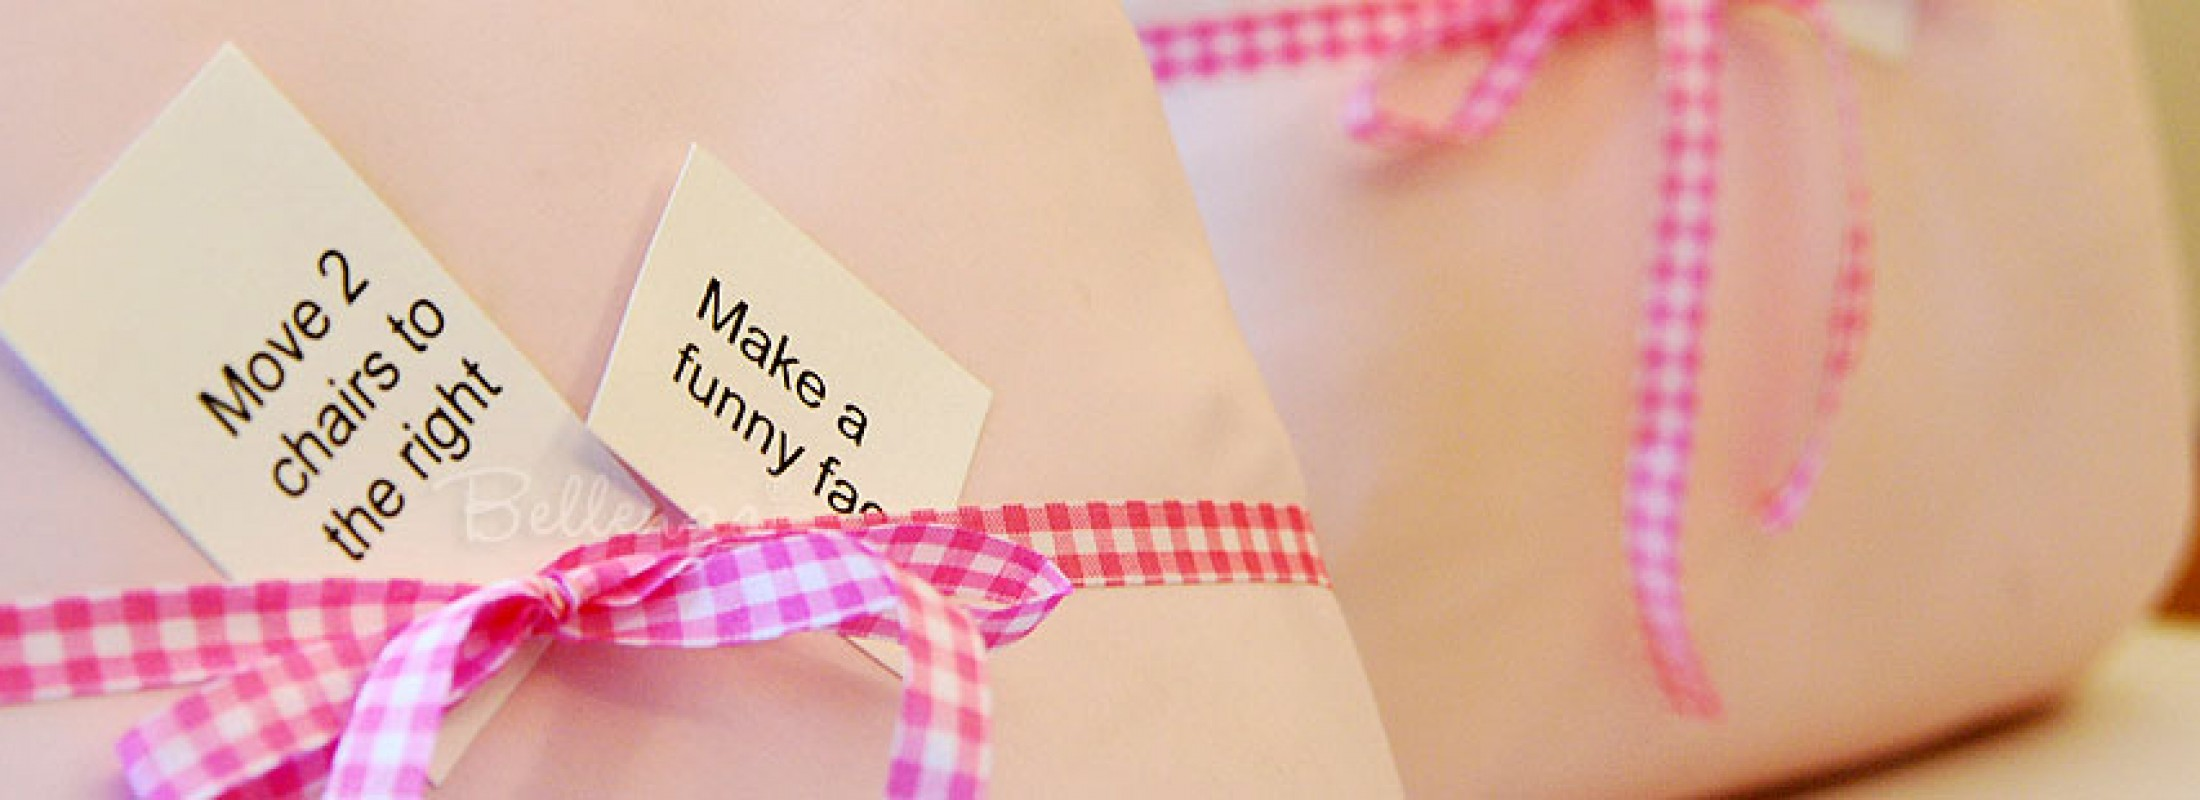 Alice in Wonderland Favors | Mad Hatter Theme Favors Ideas